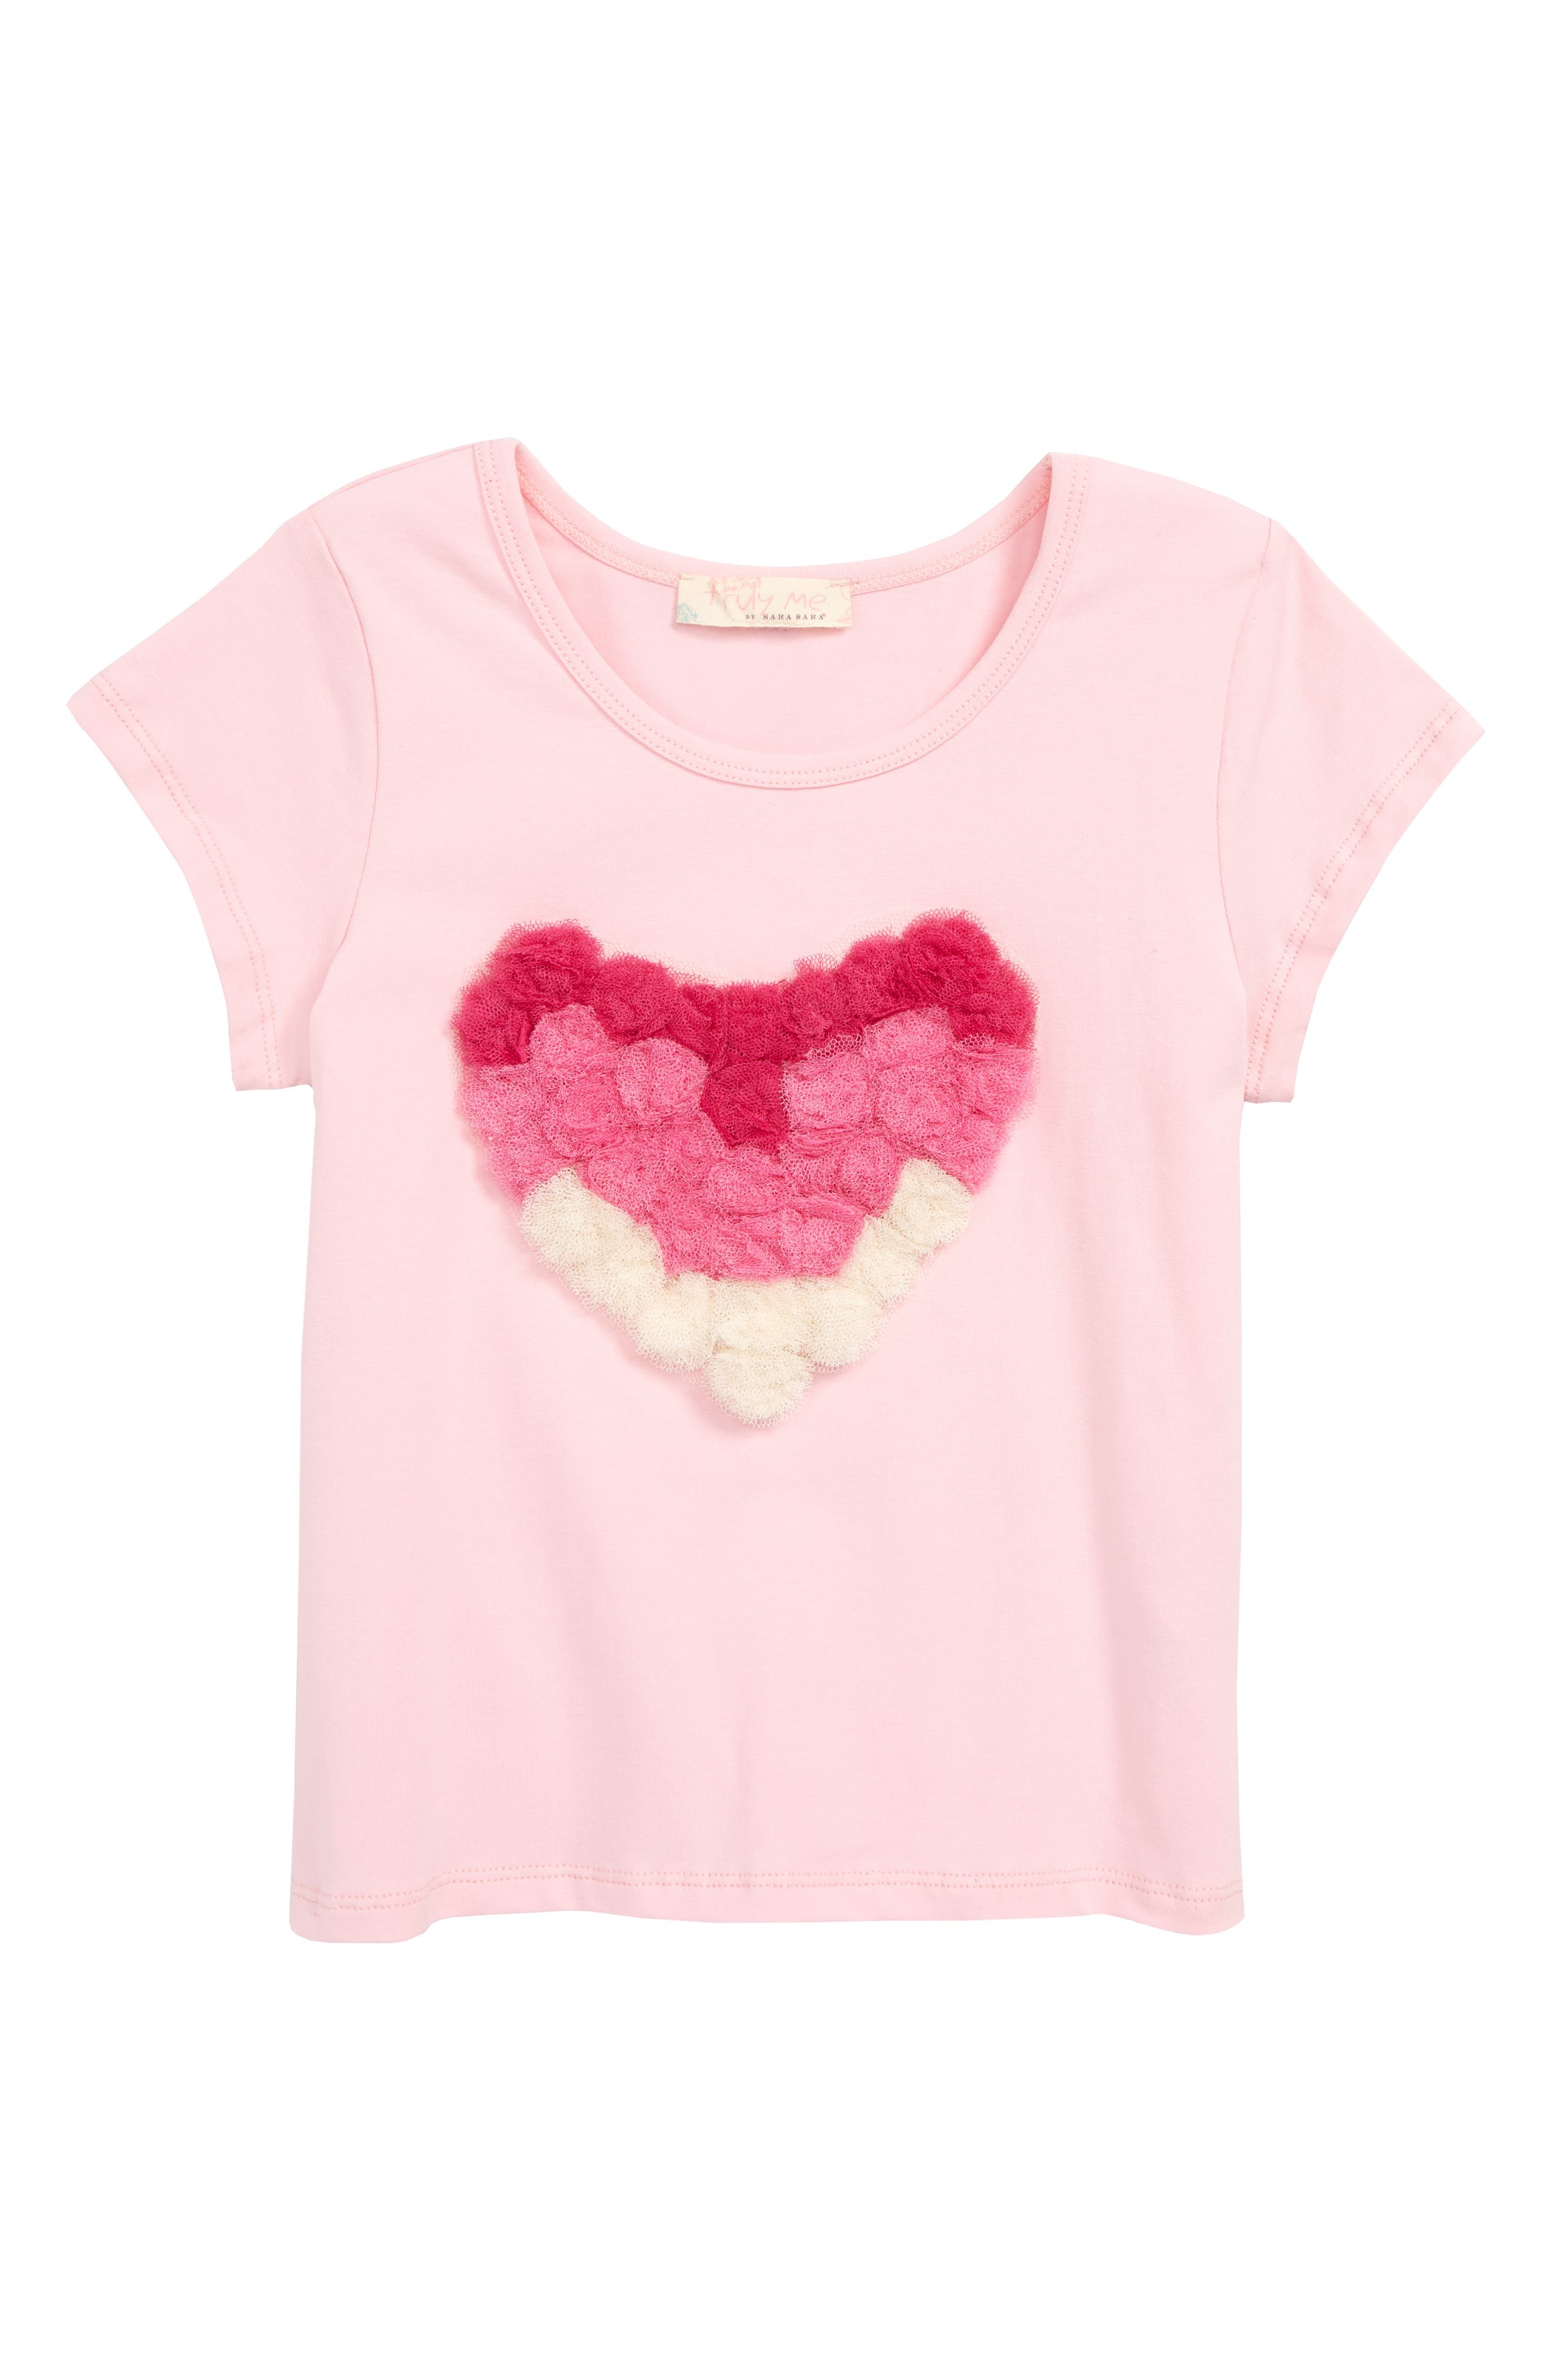 TRULY ME,                             Heart Appliqué Tee,                             Main thumbnail 1, color,                             LIGHT PINK